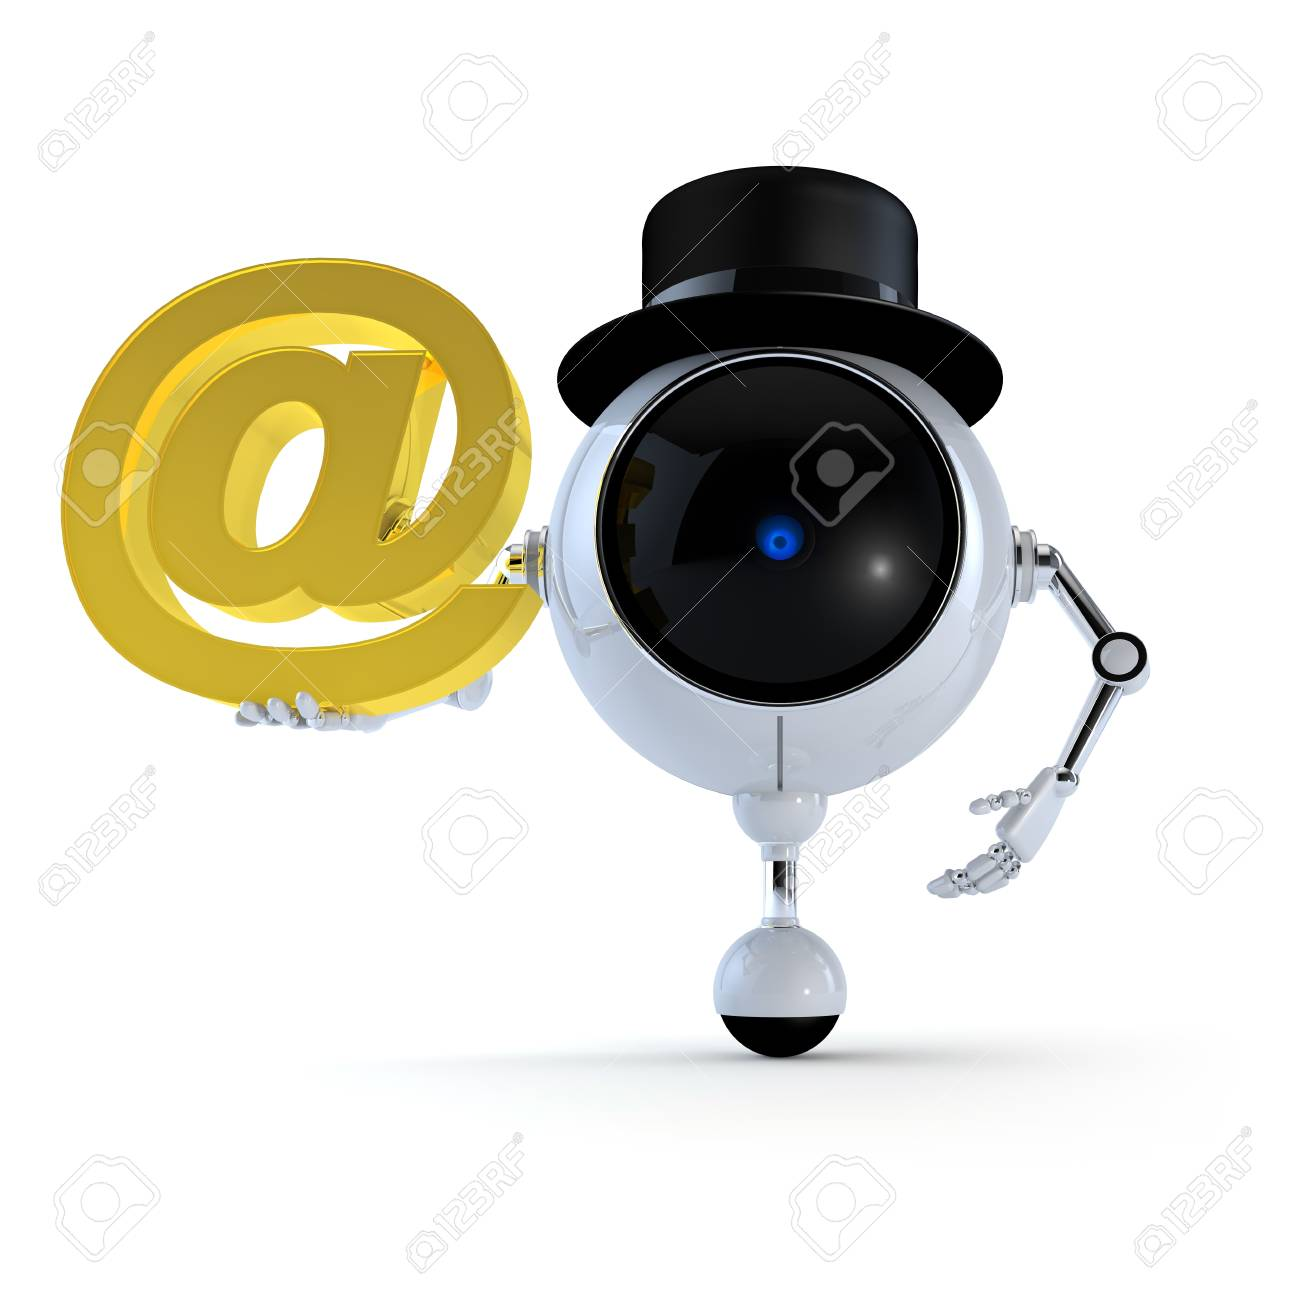 Robot with Signs Stock Photo - 15315910